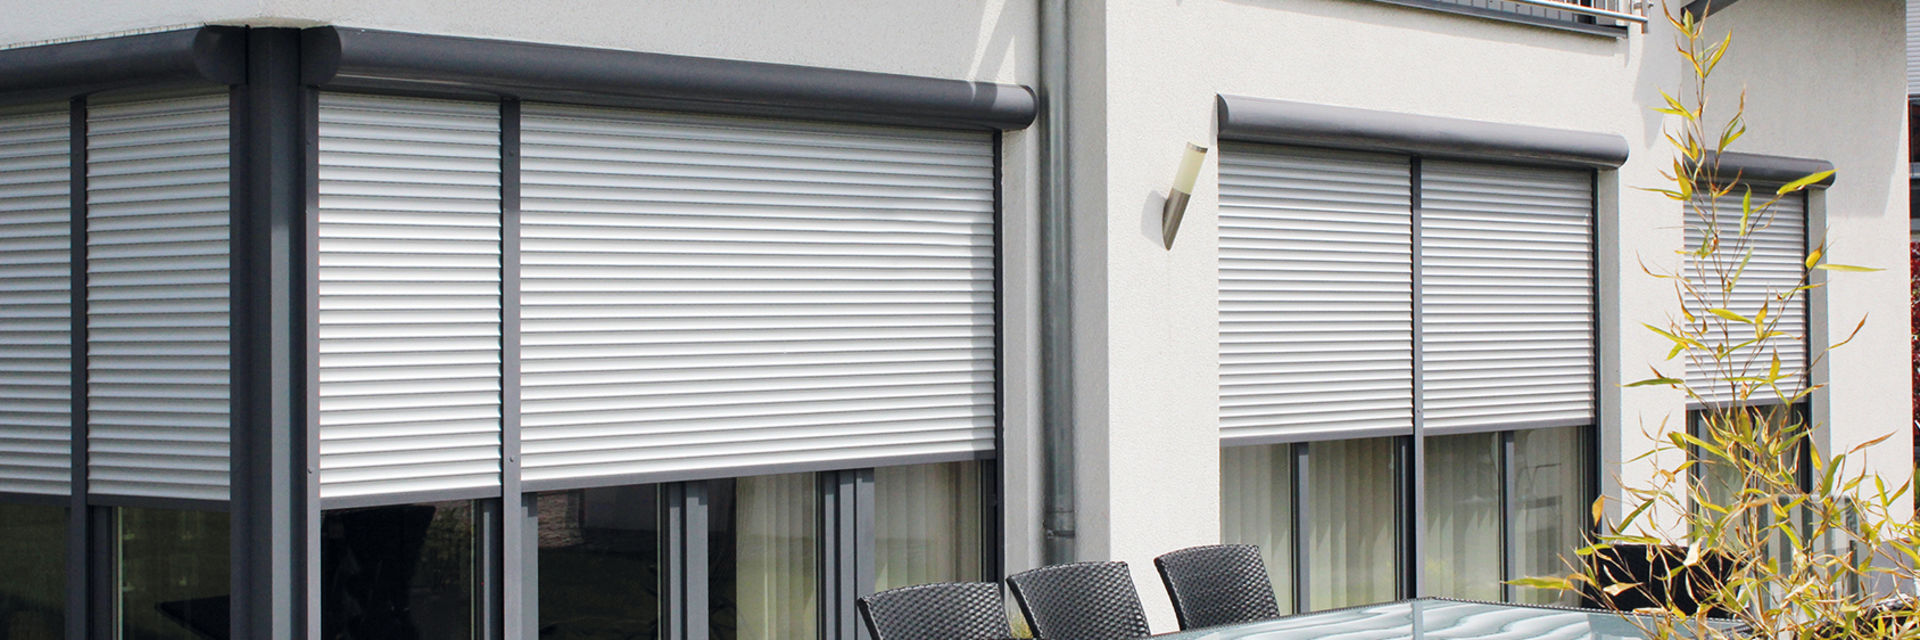 Secure Tech Roller Shutters Melbourne Have Re-designed Their Website Using More Images. Almost Reaching More Than 1000 Projects in Total